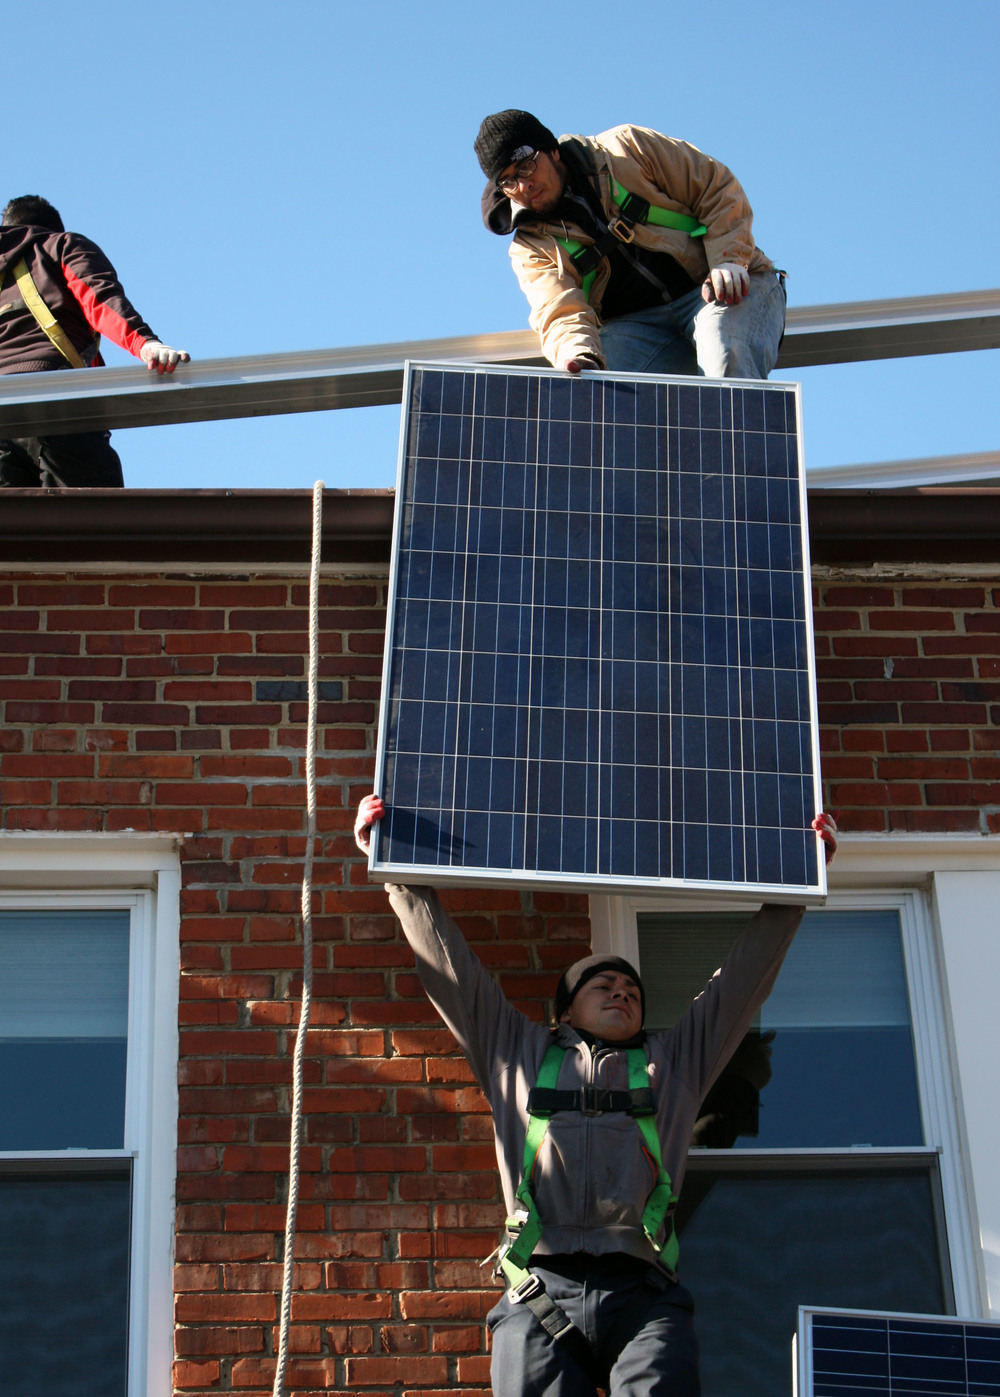 solar panels are just one way to contribute to environmental sustainability.